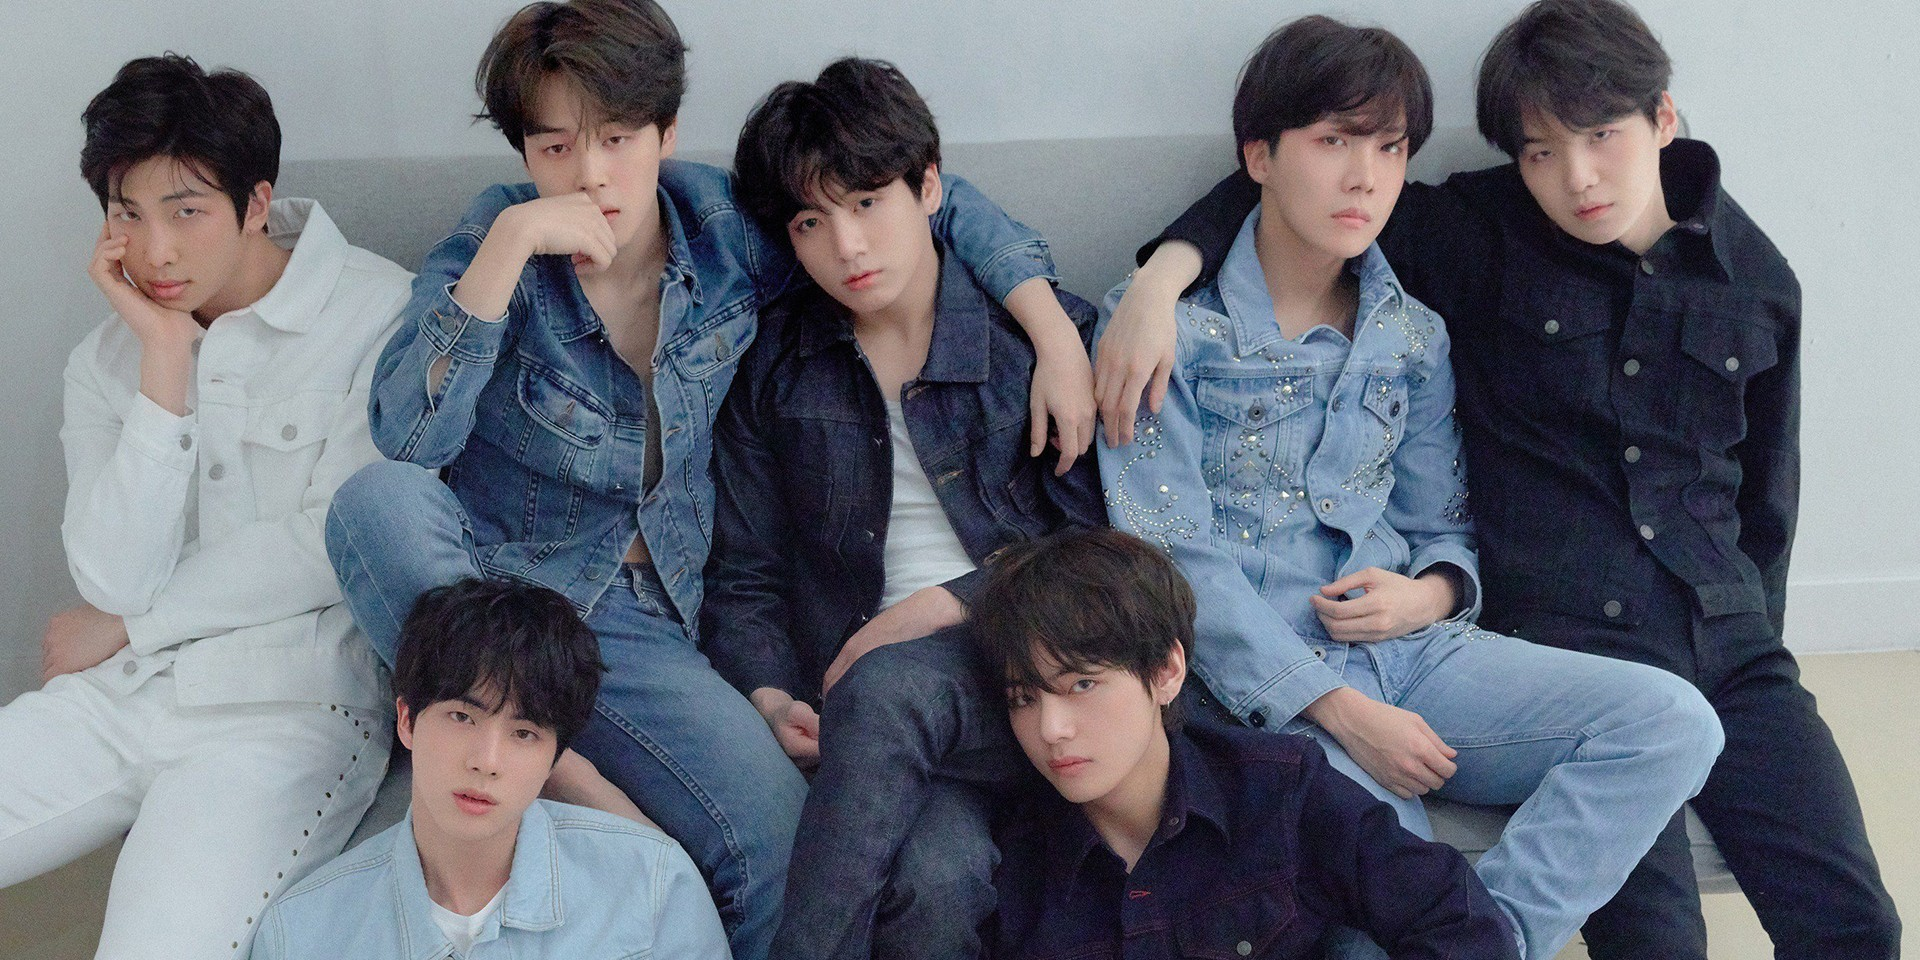 BTS drop music video for 'FAKE LOVE' off new album LOVE YOURSELF 轉 'Tear'– watch